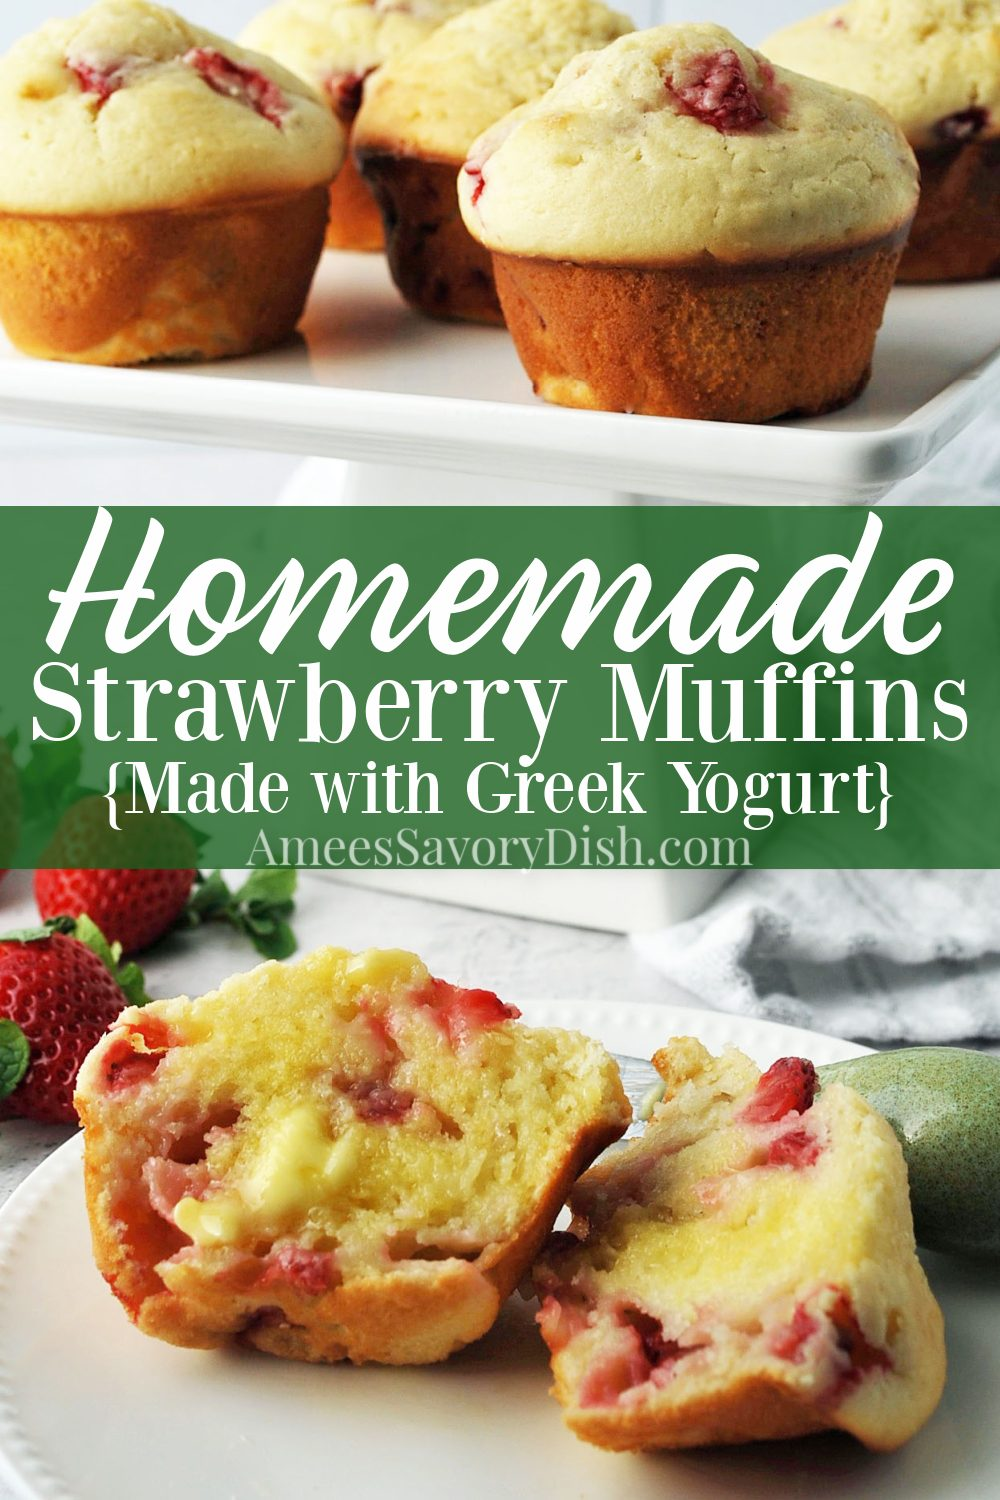 This homemade strawberry muffin recipe uses a blend of Greek yogurt and butter for the perfect muffin texture with just the right amount of sweetness. #strawberrymuffins #greekyogurtmuffins #muffins #muffinrecipe via @Ameessavorydish